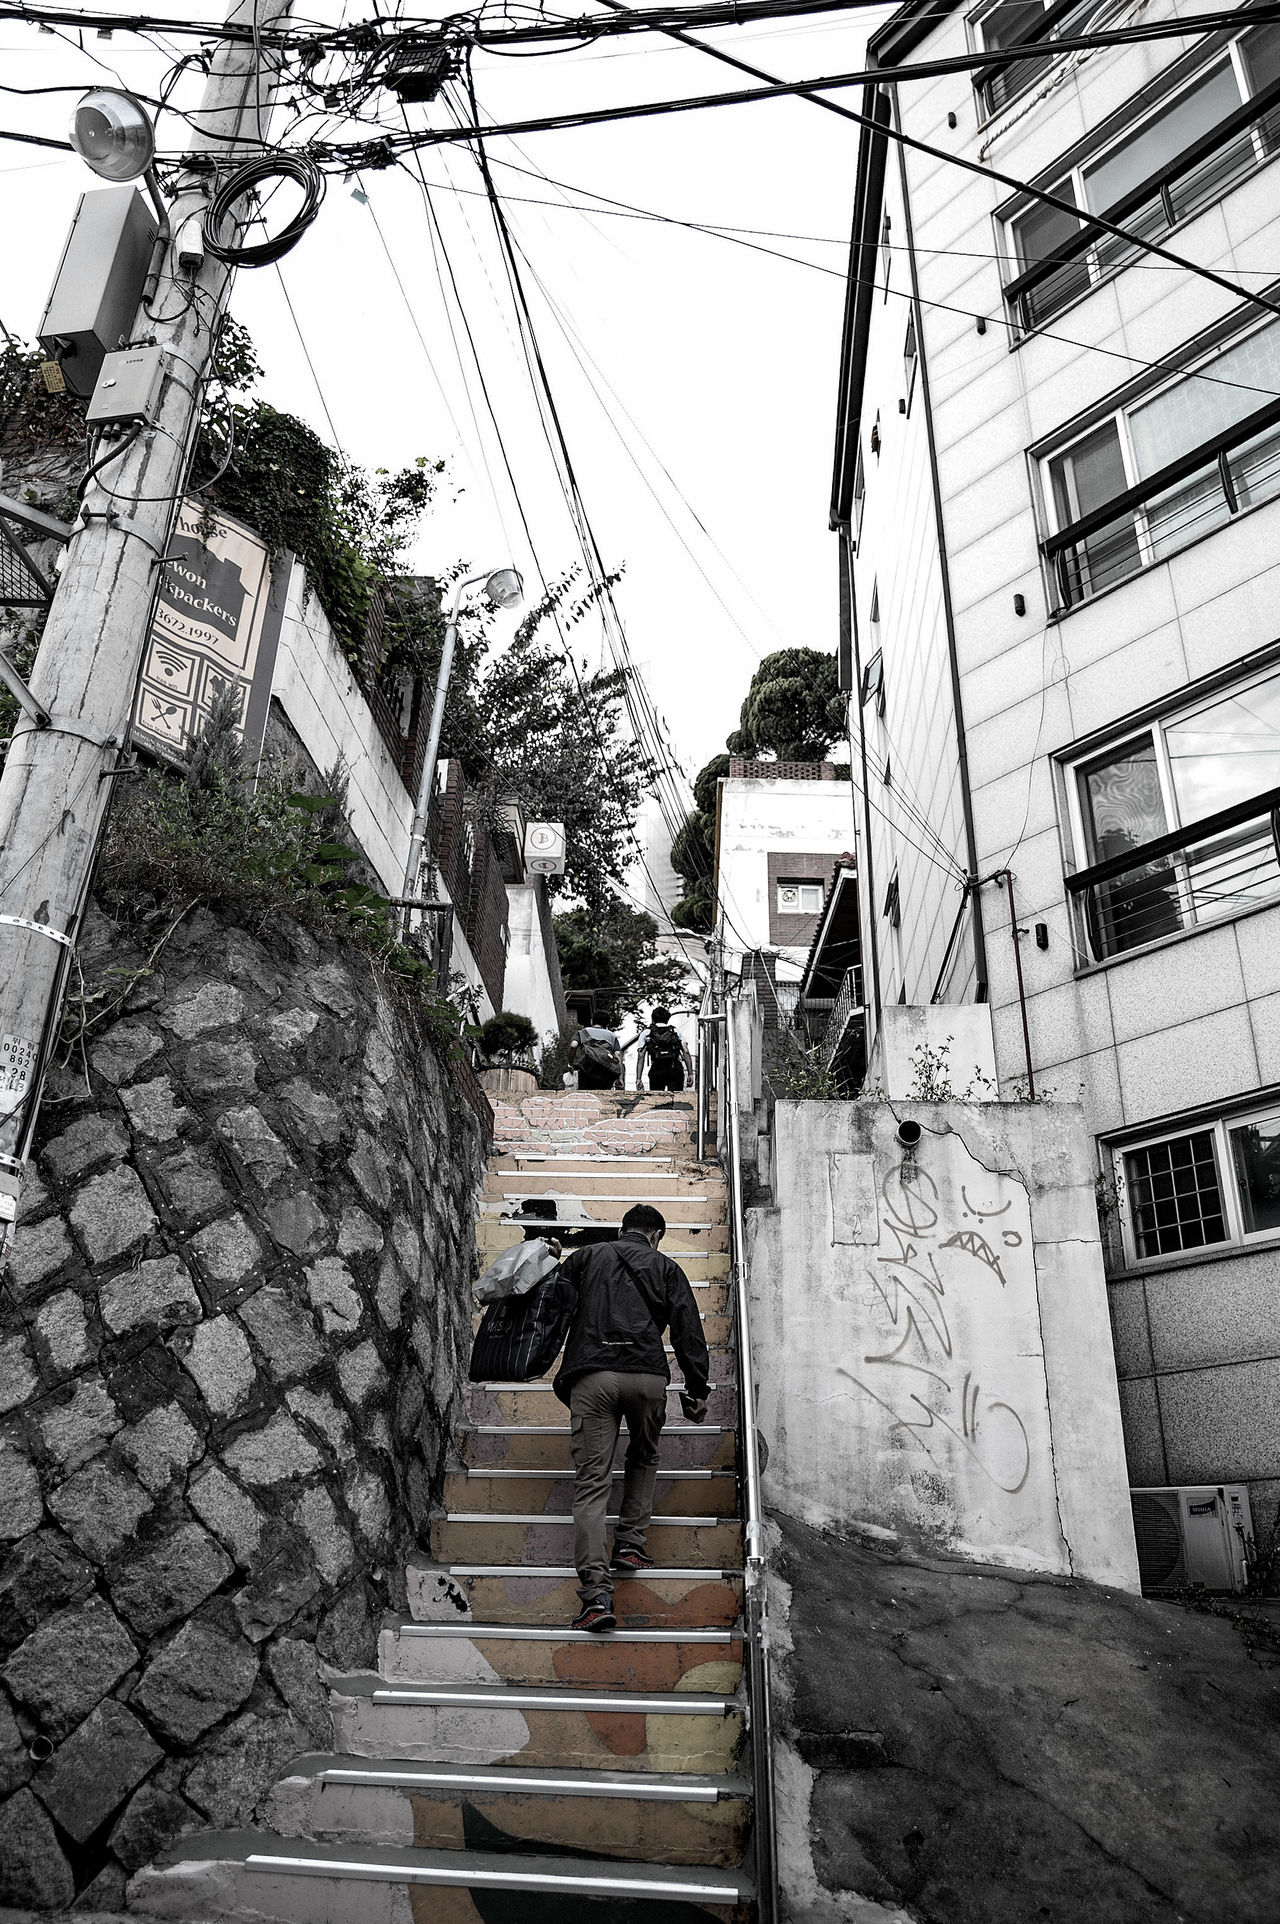 Lifestyles Relaxation Residential District Street Monochrome Photography Itaewon Relexation Cityscape Snapshot Getting Inspired✨ Feeling Inspired Itaewon Freedom Seoul Korea City City Life Snapshots Of Life Getting Inspired TakeoverContrast Colors And Patterns Monochrome MonochromePhotography